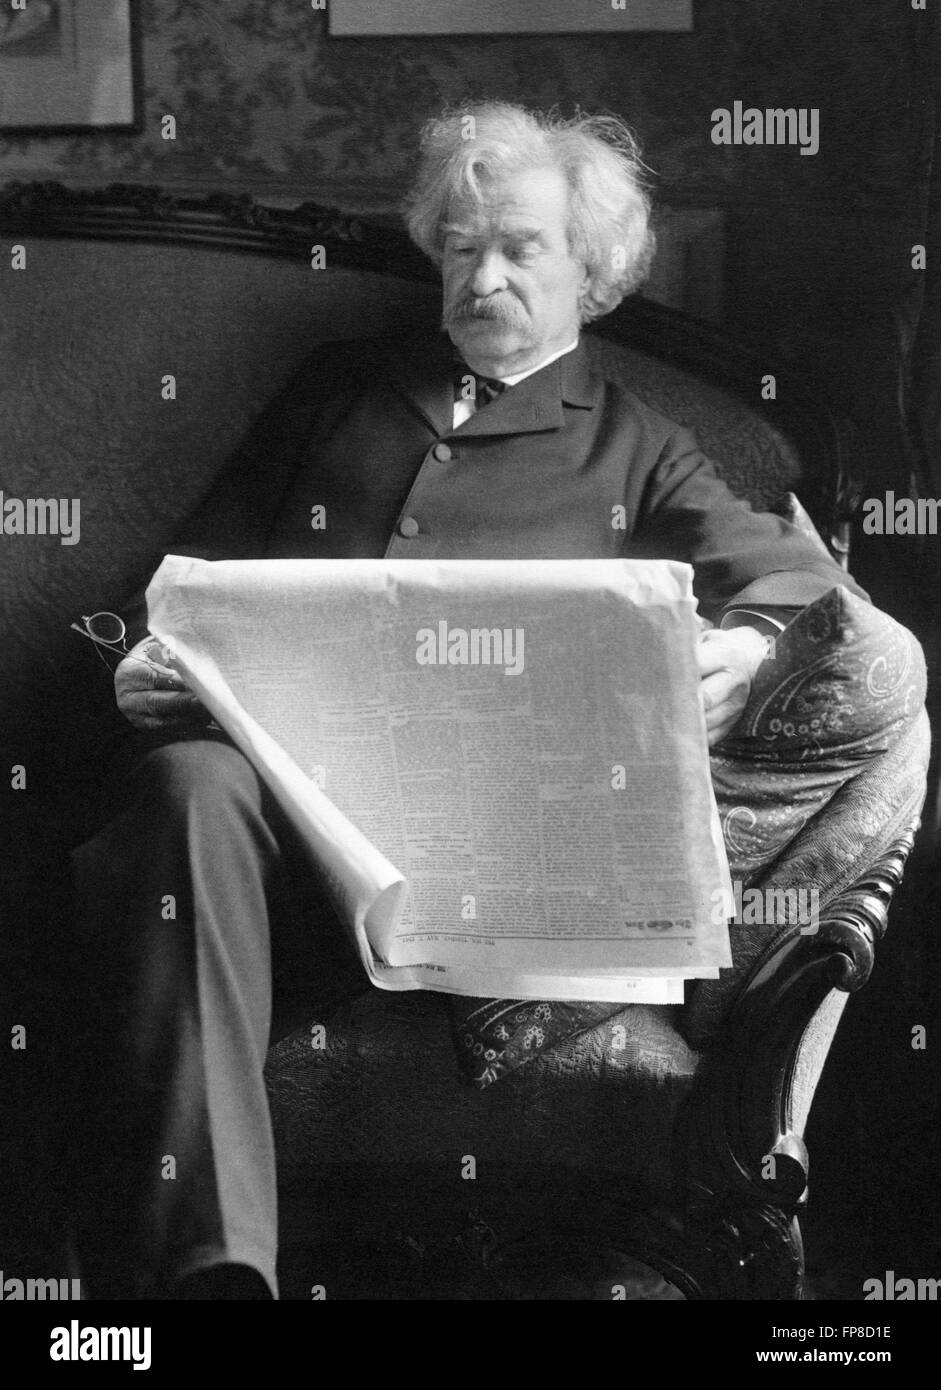 Mark Twain. Portrait of the American writer Samuel Langhorne Clemens,by Charles Bolles, May 1901 - Stock Image